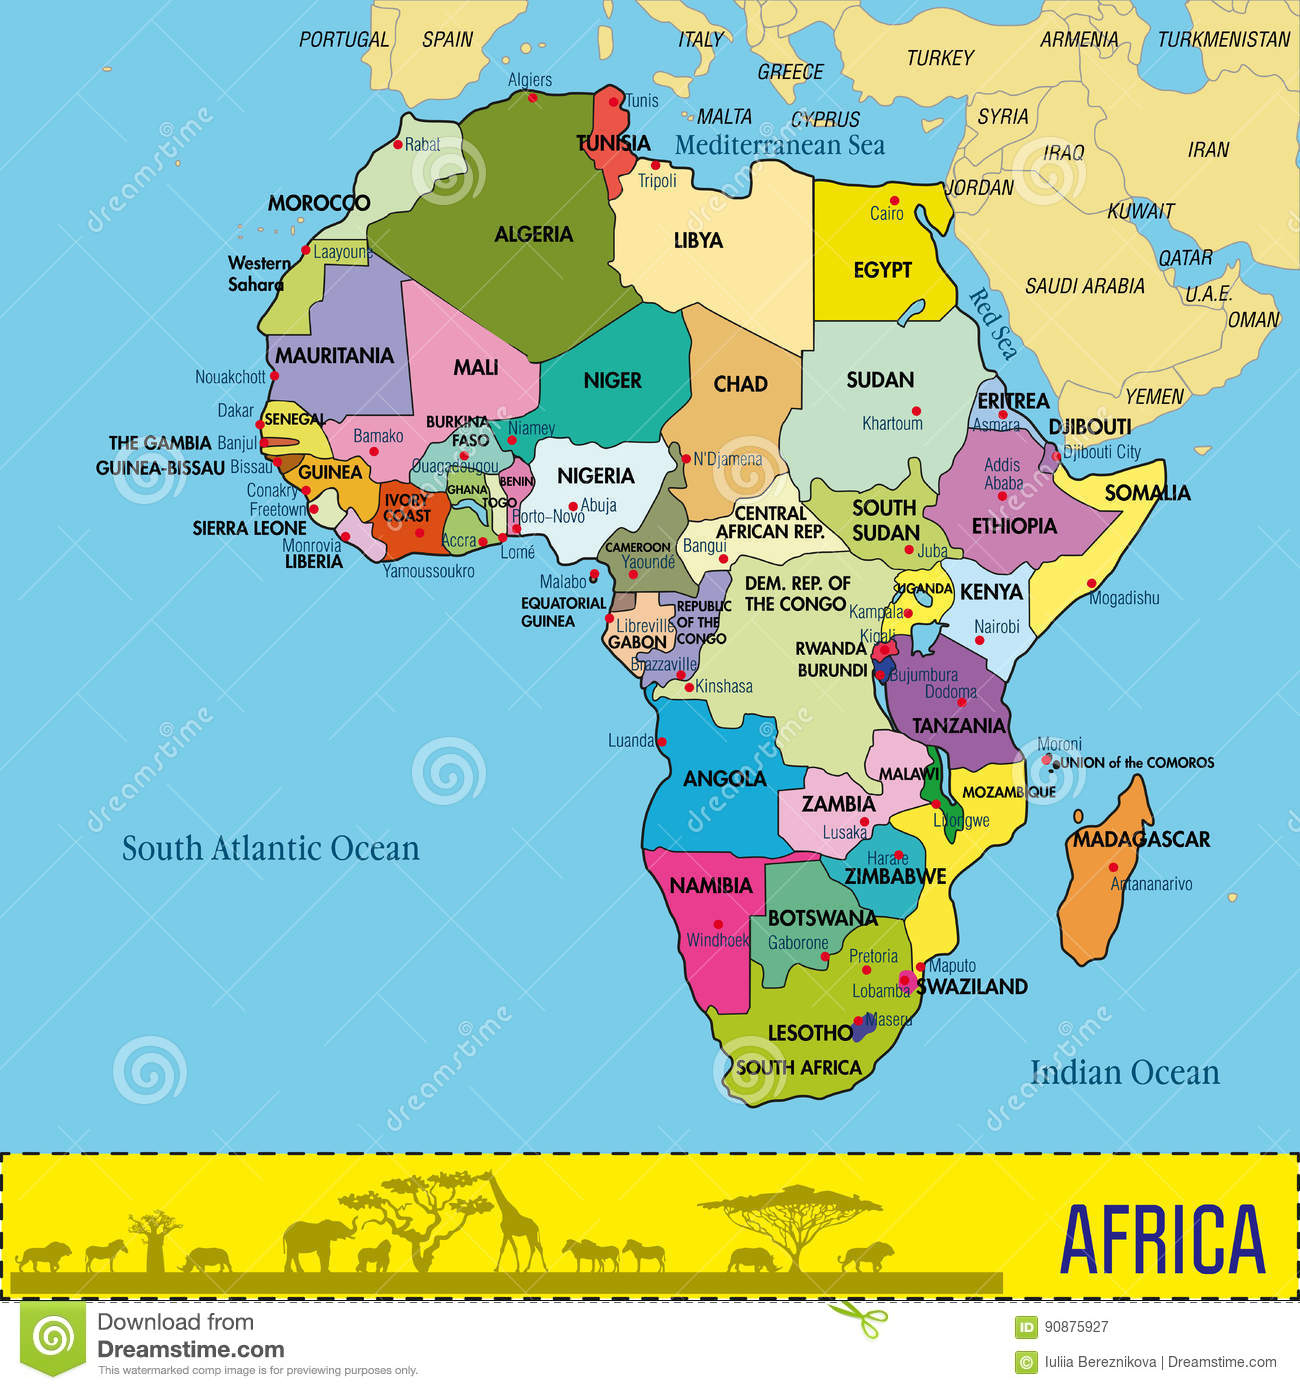 Download Map Of Africa With All Countries And Their Capitals Stock Vector    Illustration Of Giraffe